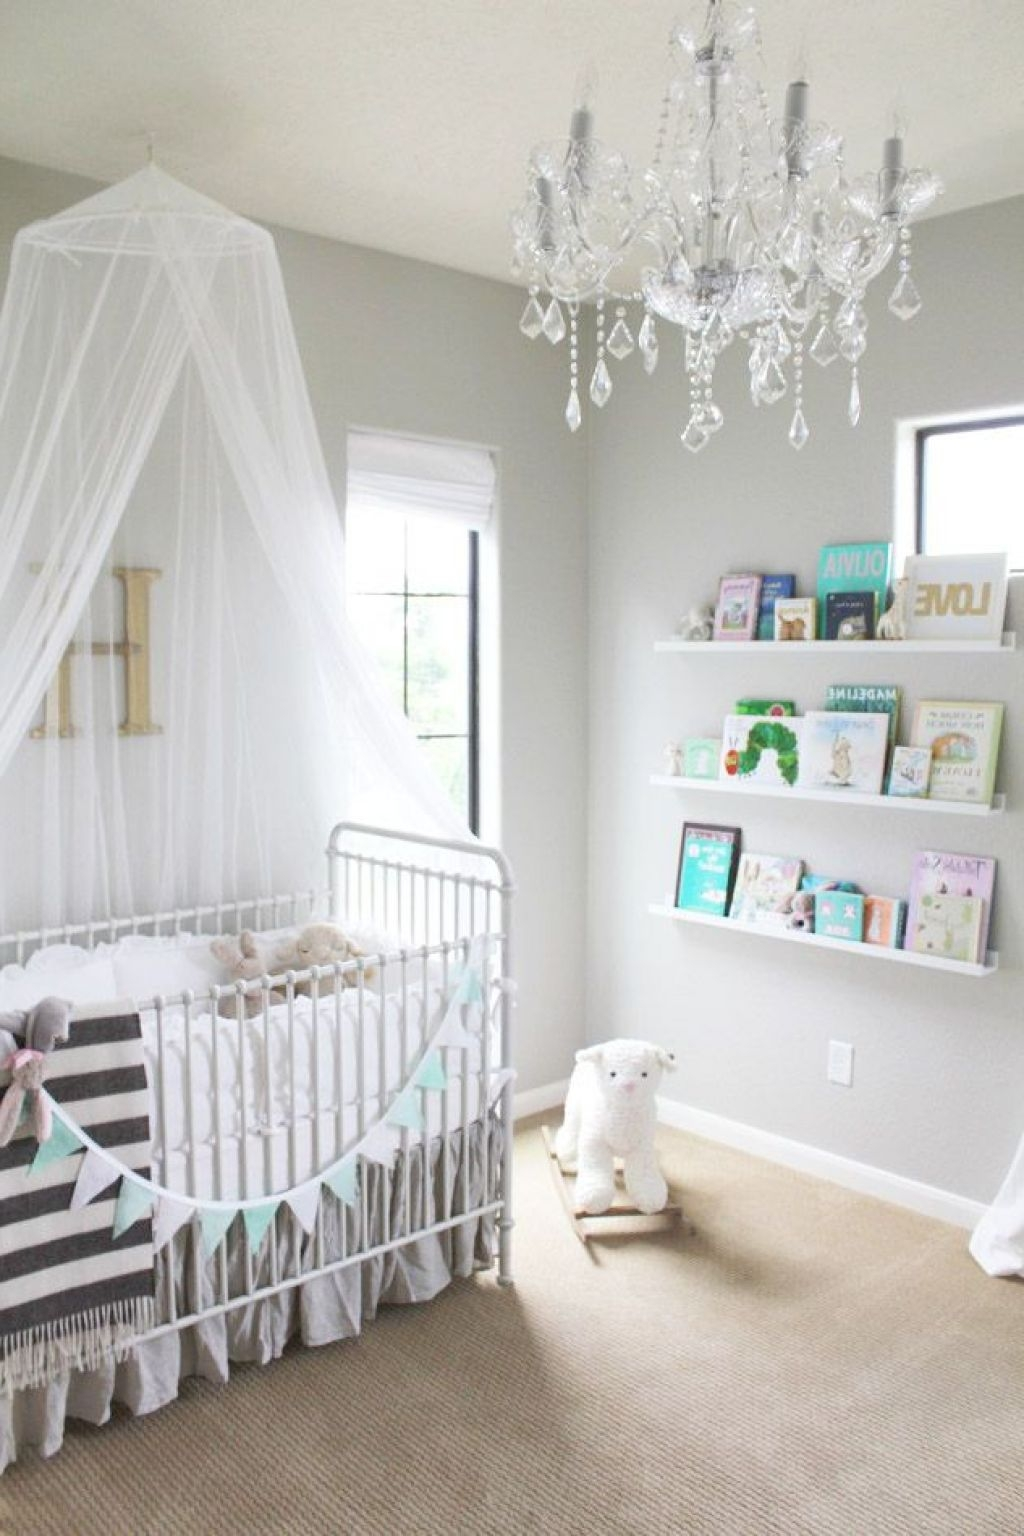 25 ideas of mini chandeliers for nursery chandelier ideas chandelier glamorous small chandelier for nursery wonderful intended for mini chandeliers for nursery image 12 aloadofball